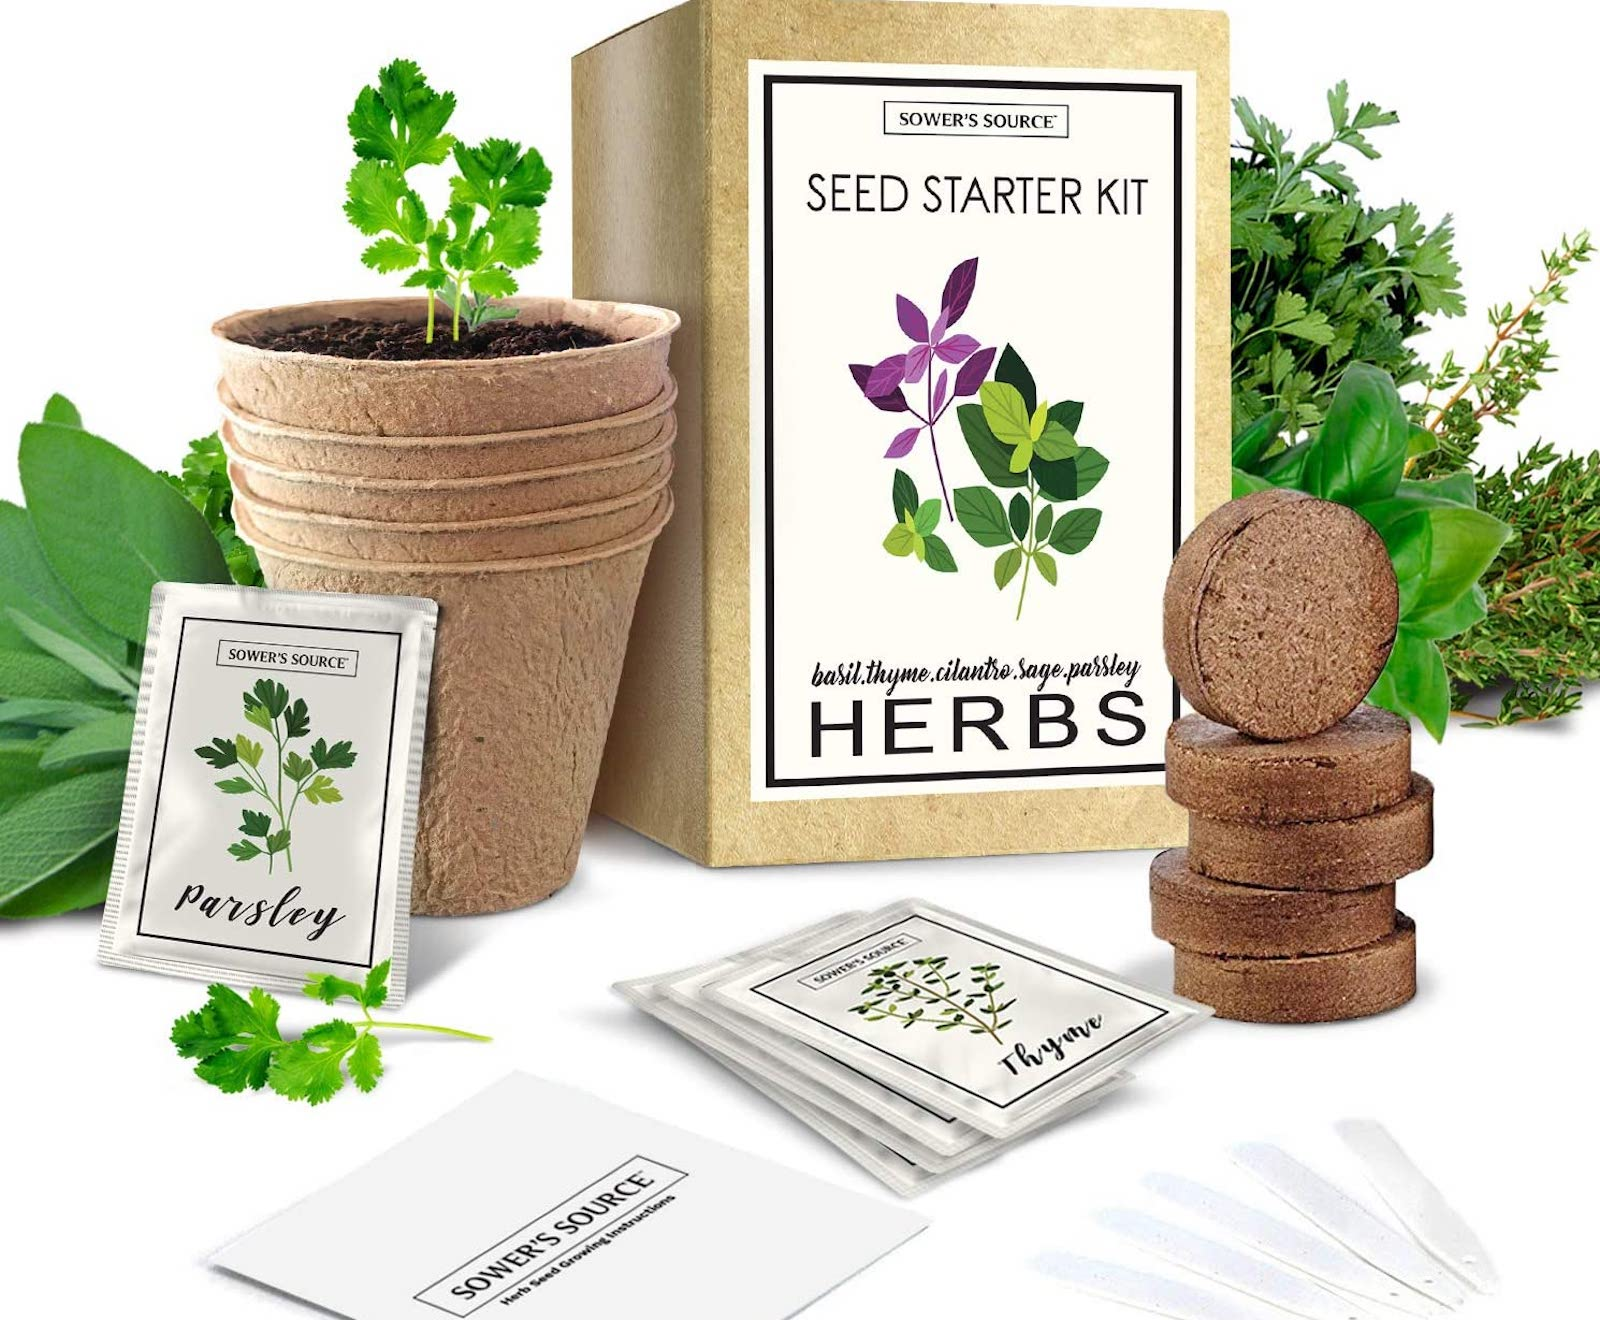 A full herb garden kit, with pots, herbs, seed packets, and a labeled box